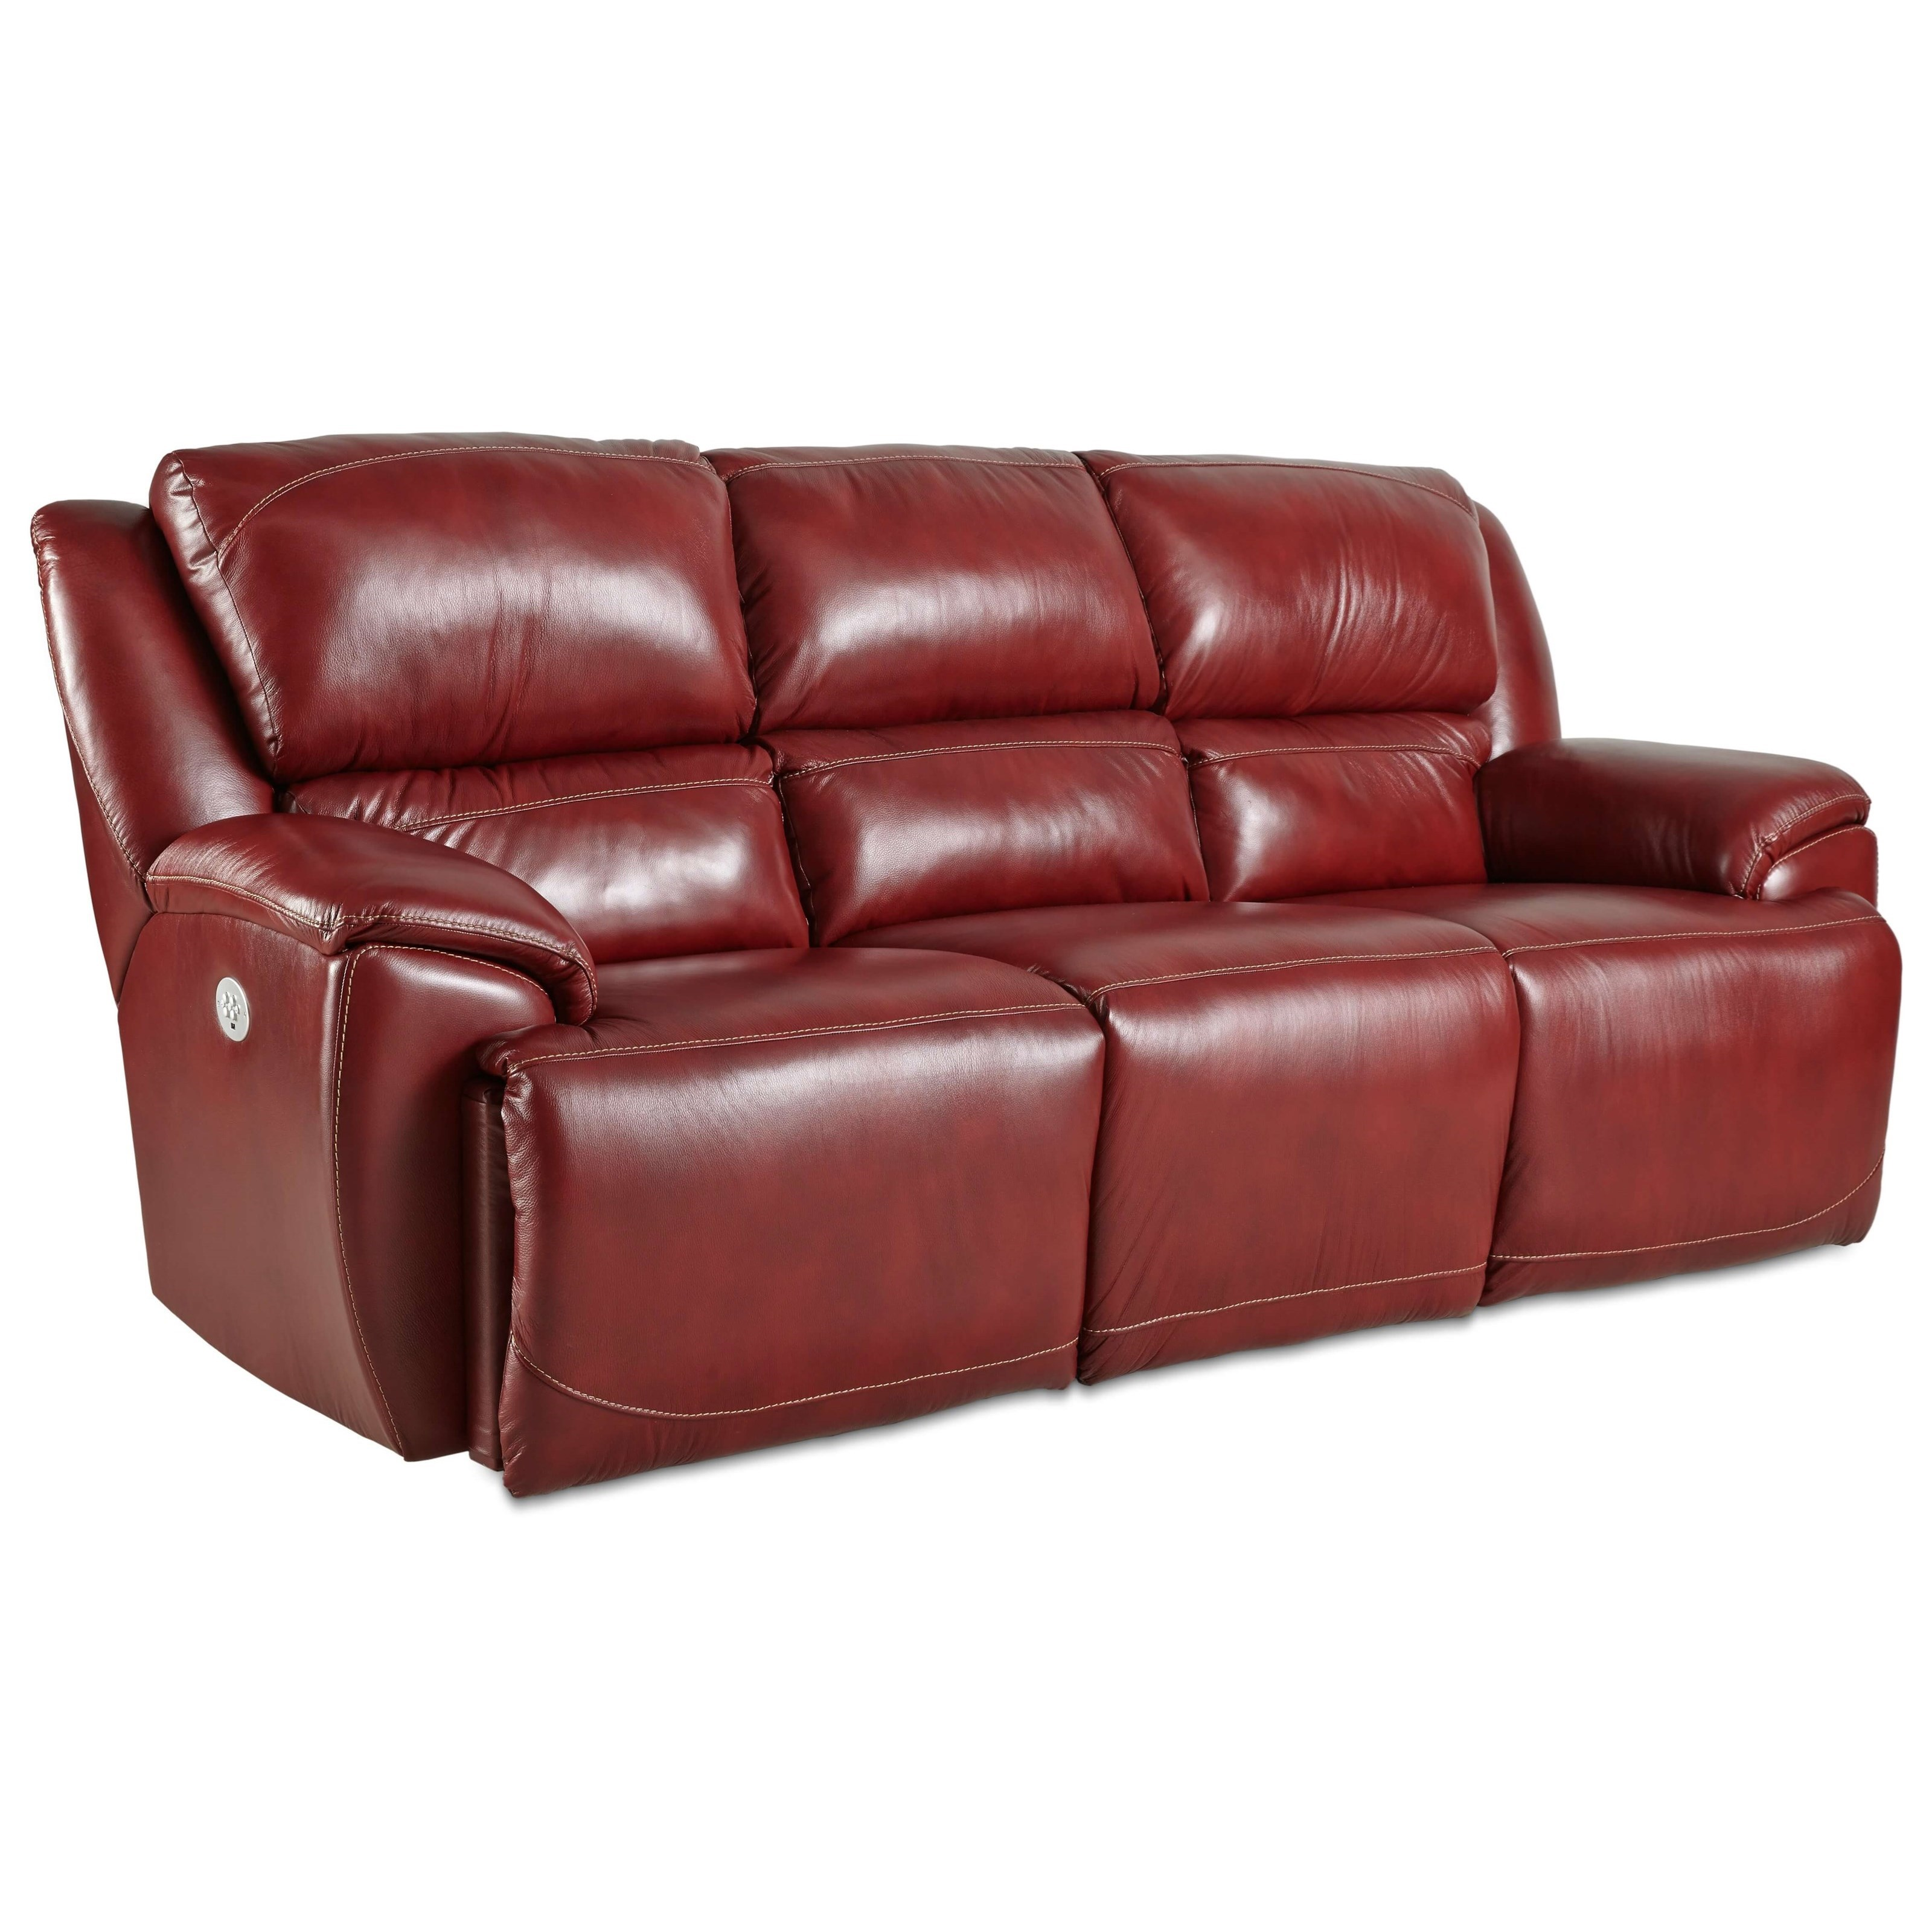 Southern Motion Majestic Double Reclining Sofa with Power Headrests - Item Number: 871-61P-906-42